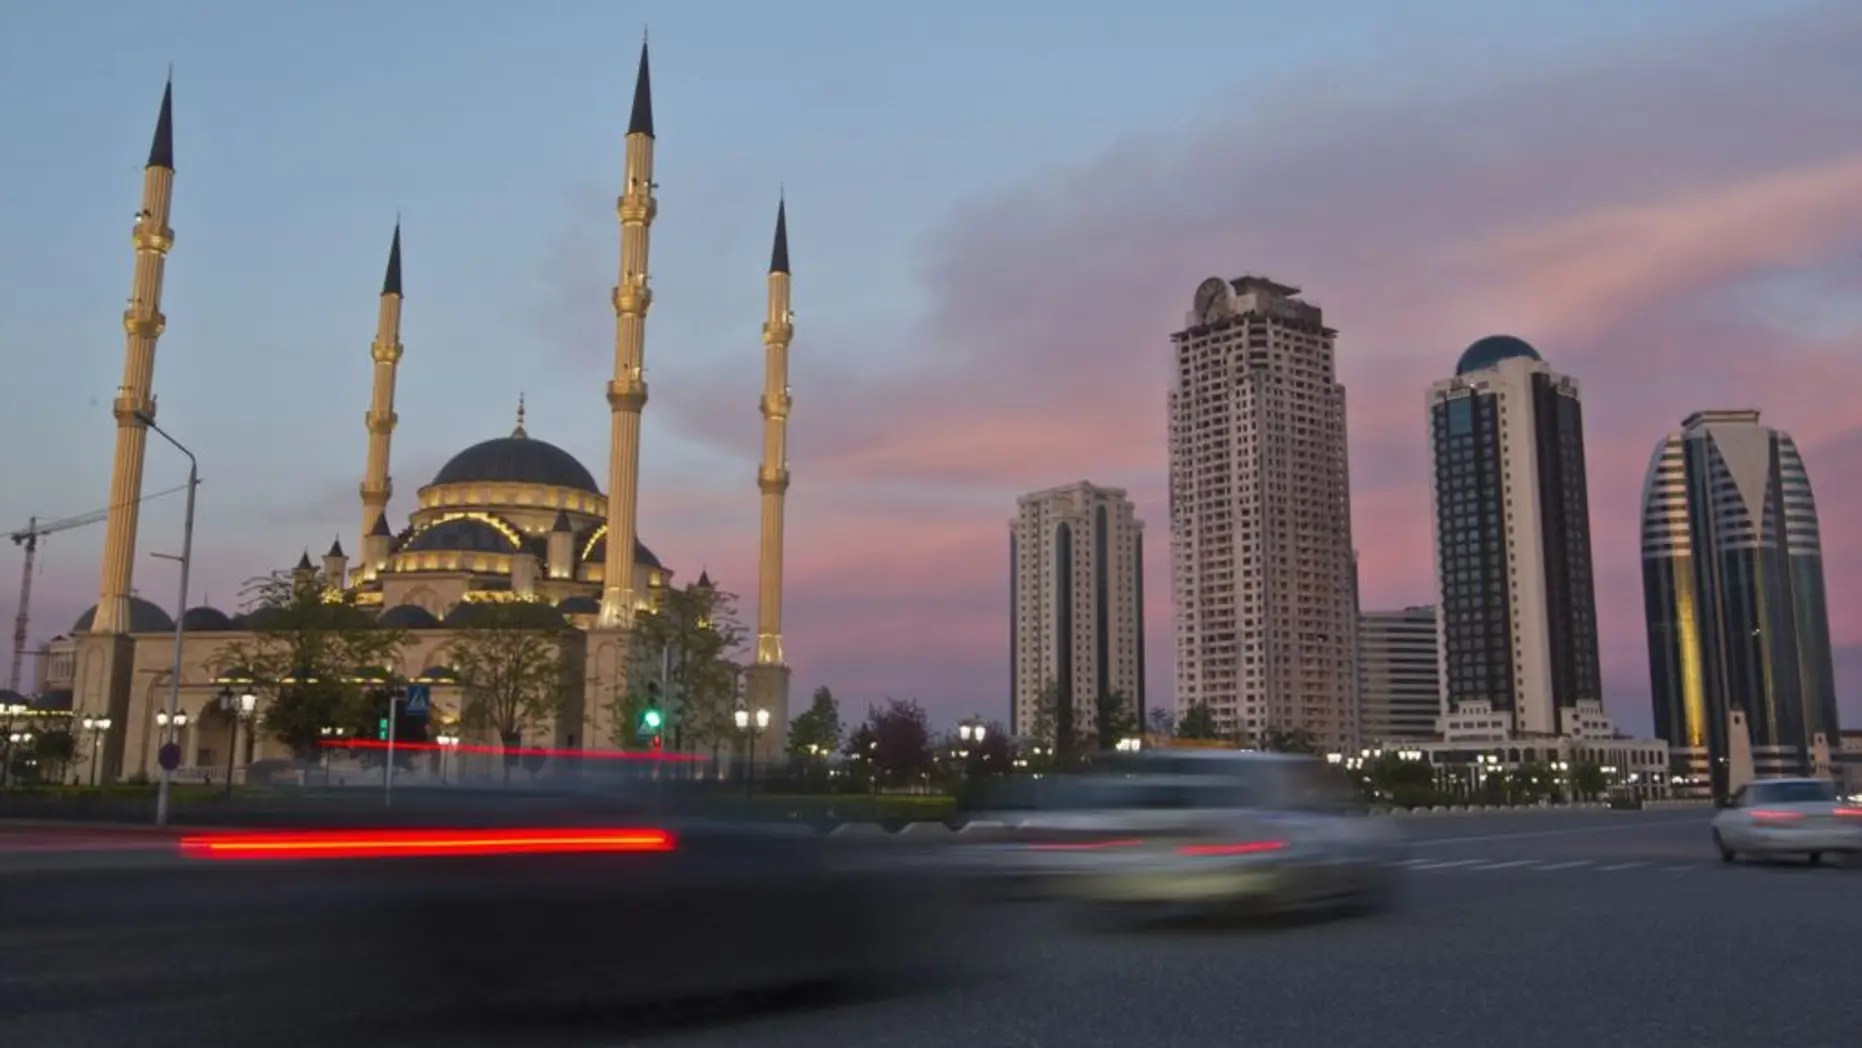 Reports are alleging at least two people have died and about 40 people detained in Chechnya as part of a new crackdown on gay people.